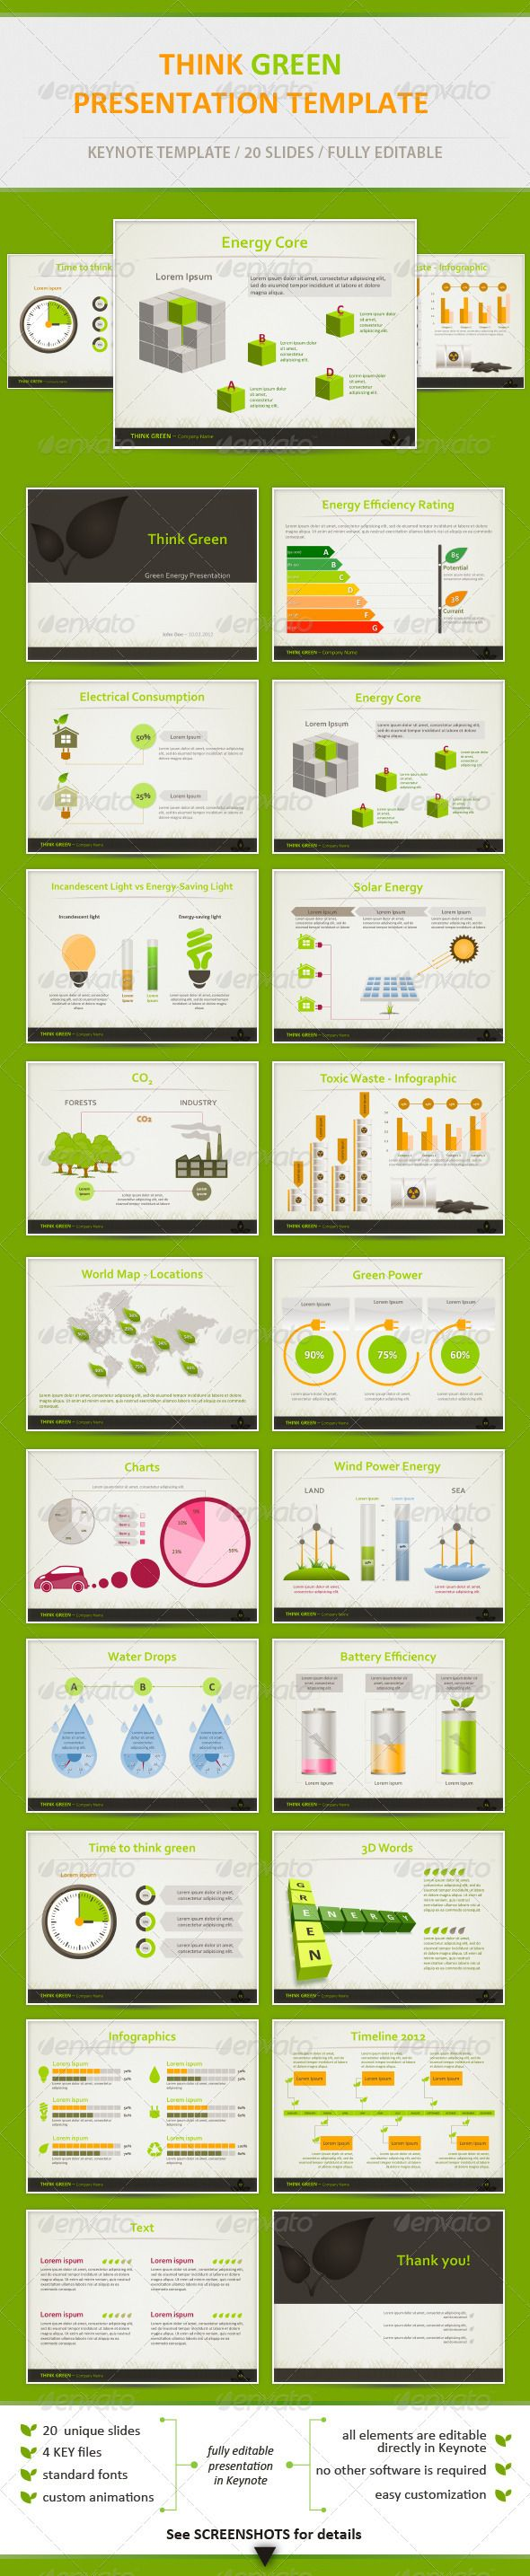 124 best keynote themes templates images on pinterest think green eco friendly keynote template presentation backgroundspresentation designpowerpoint presentation templatesbusiness toneelgroepblik Choice Image